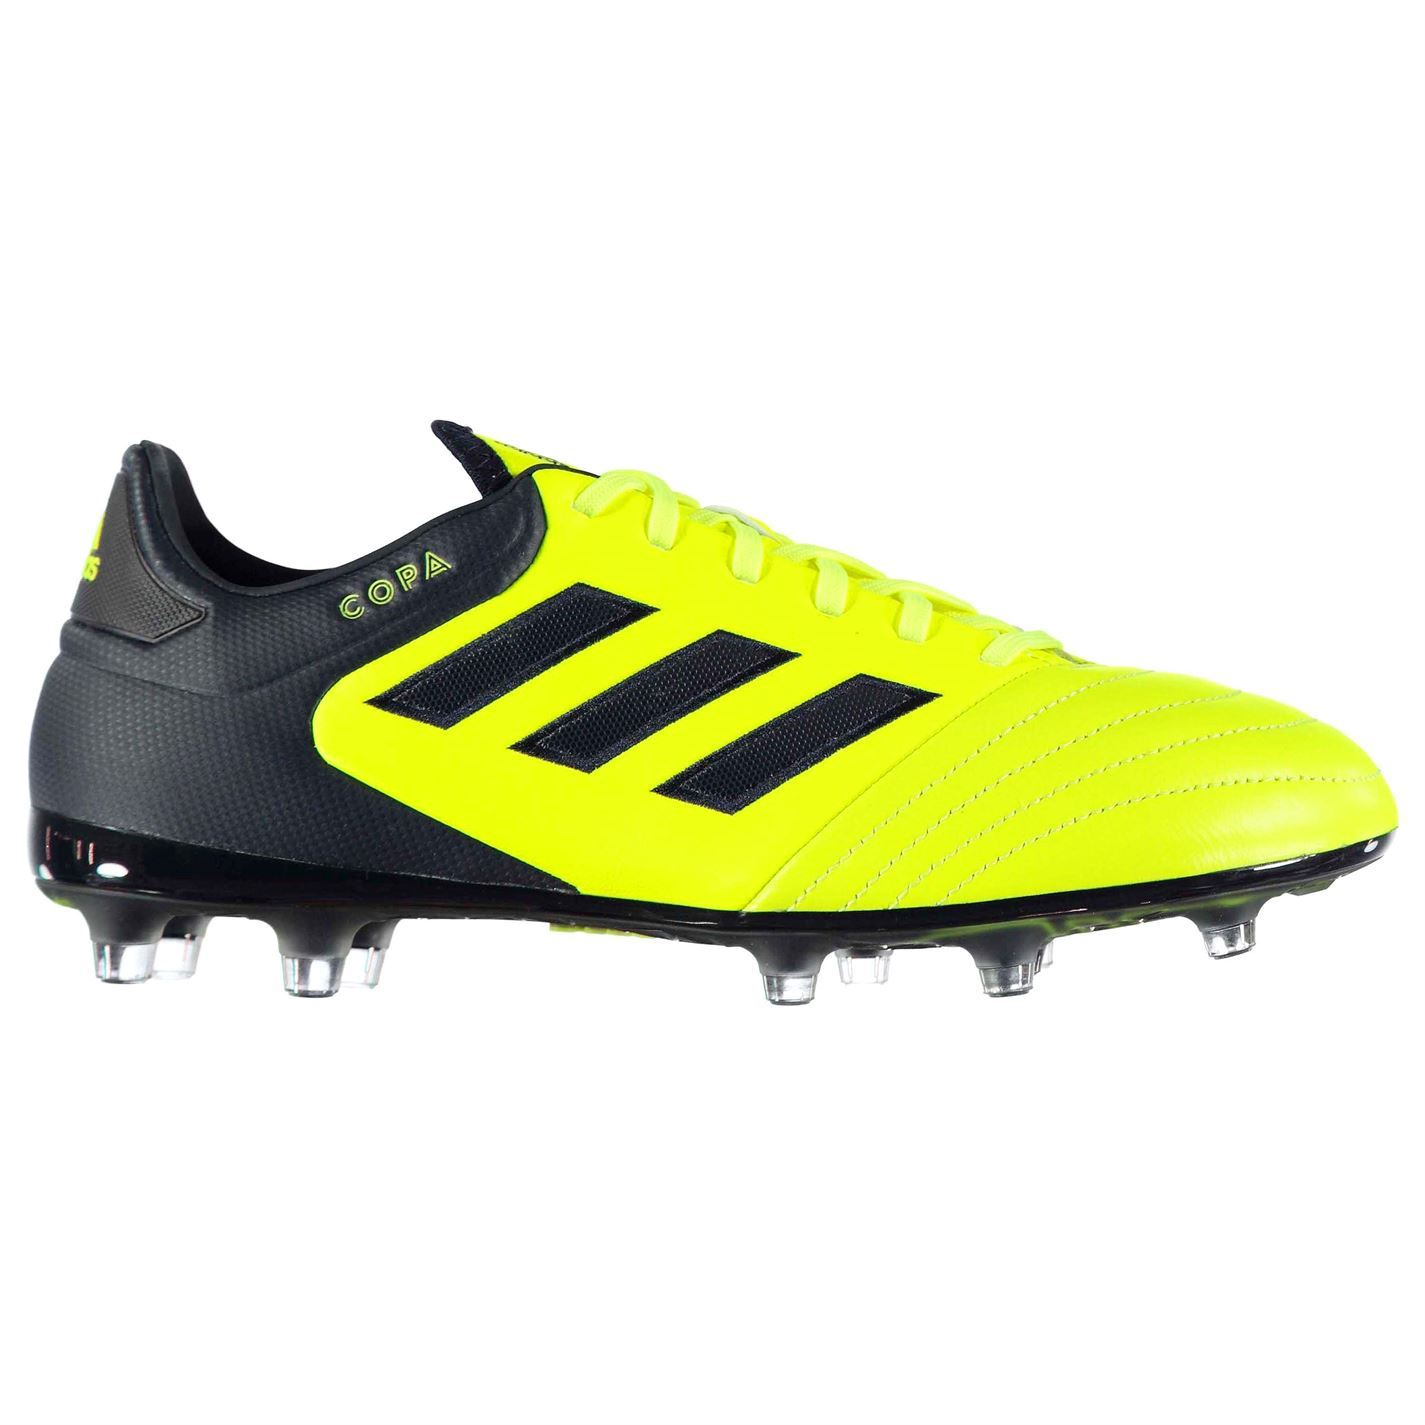 418106846 adidas Copa 17.2 FG Firm Ground Football Boots Mens Yellow Soccer Shoes  Cleats